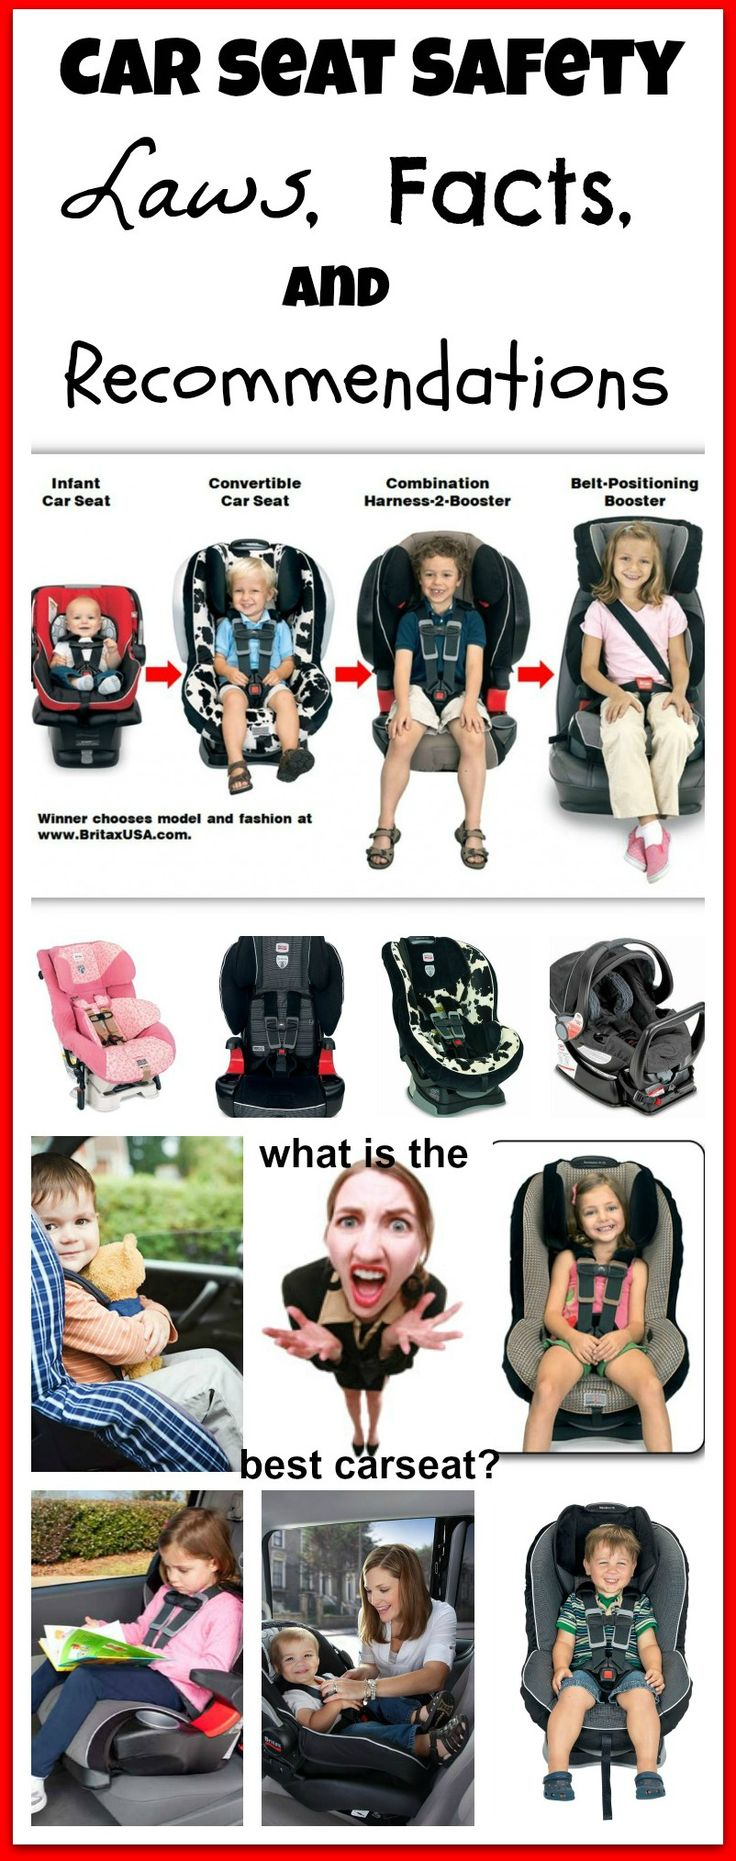 86 best Car Seat Safety images on Pinterest | Car seat safety, Car ...